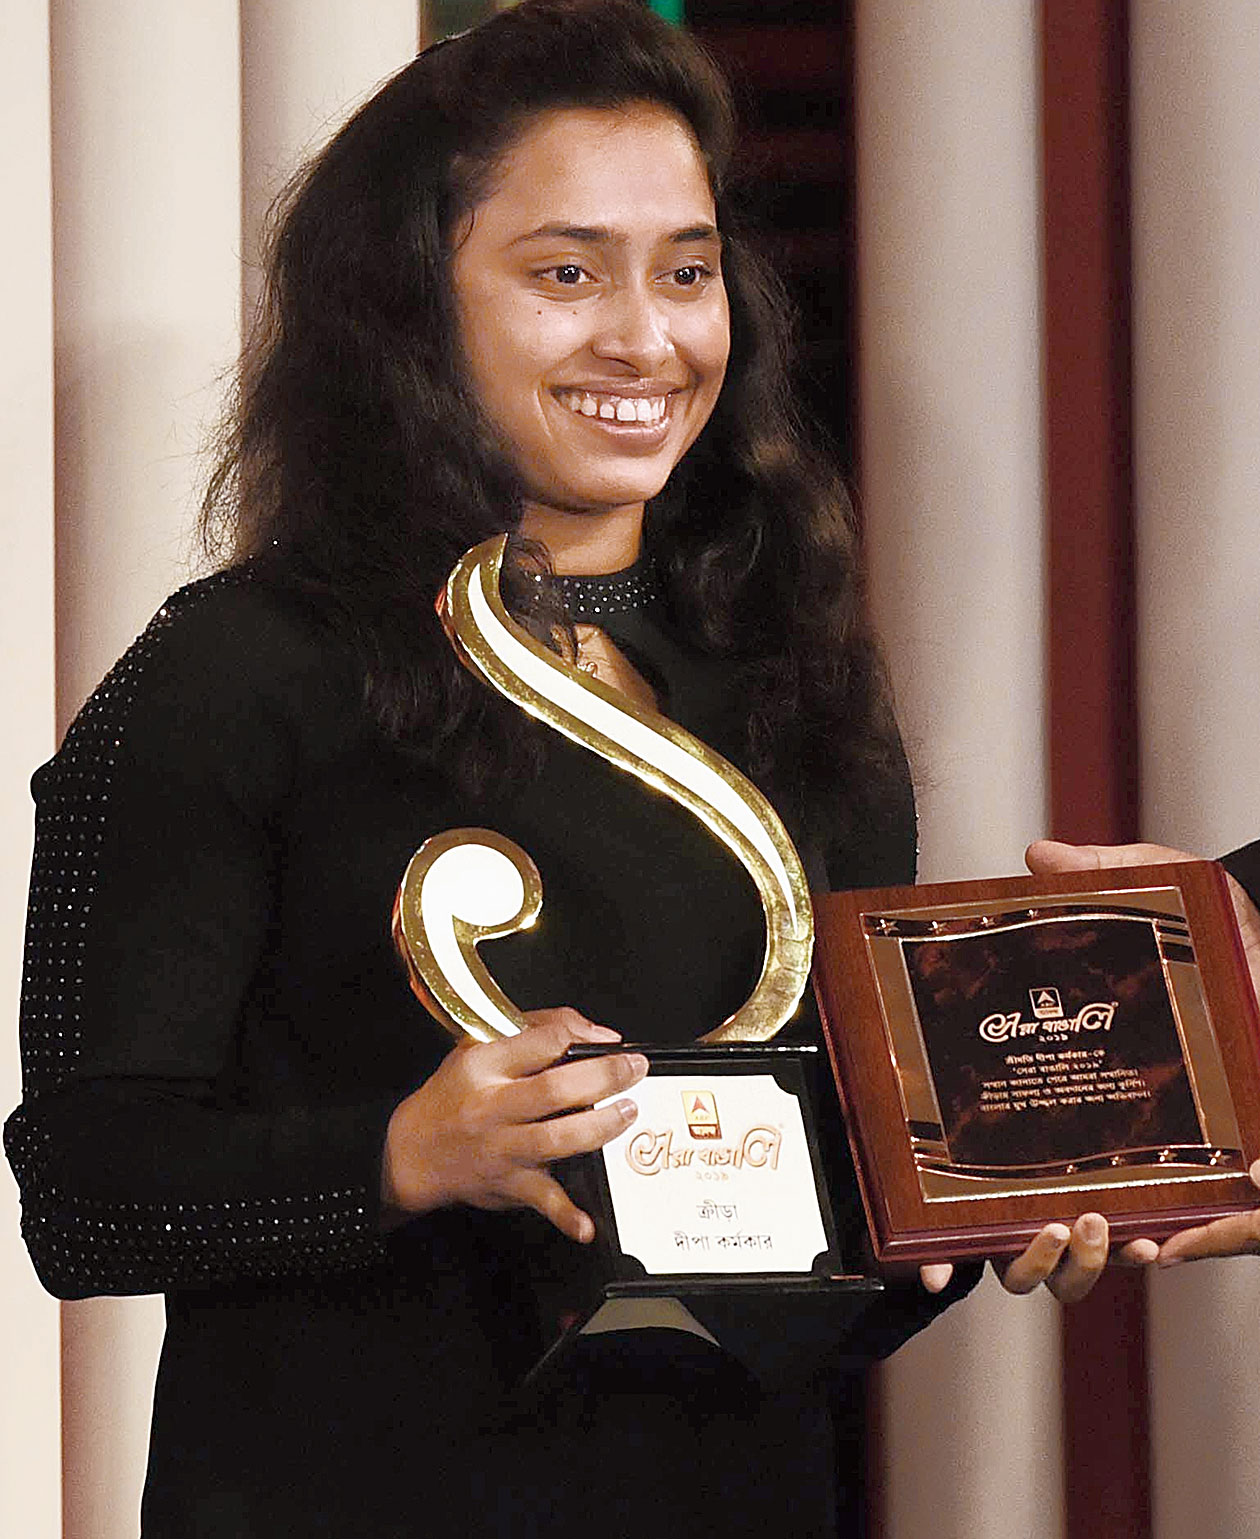 Gymnast Dipa Karmakar with the Sera Bangali (sports) award at the ABP Ananda Sera Bangali 2019, partnered by The Telegraph, in Calcutta on Saturday.